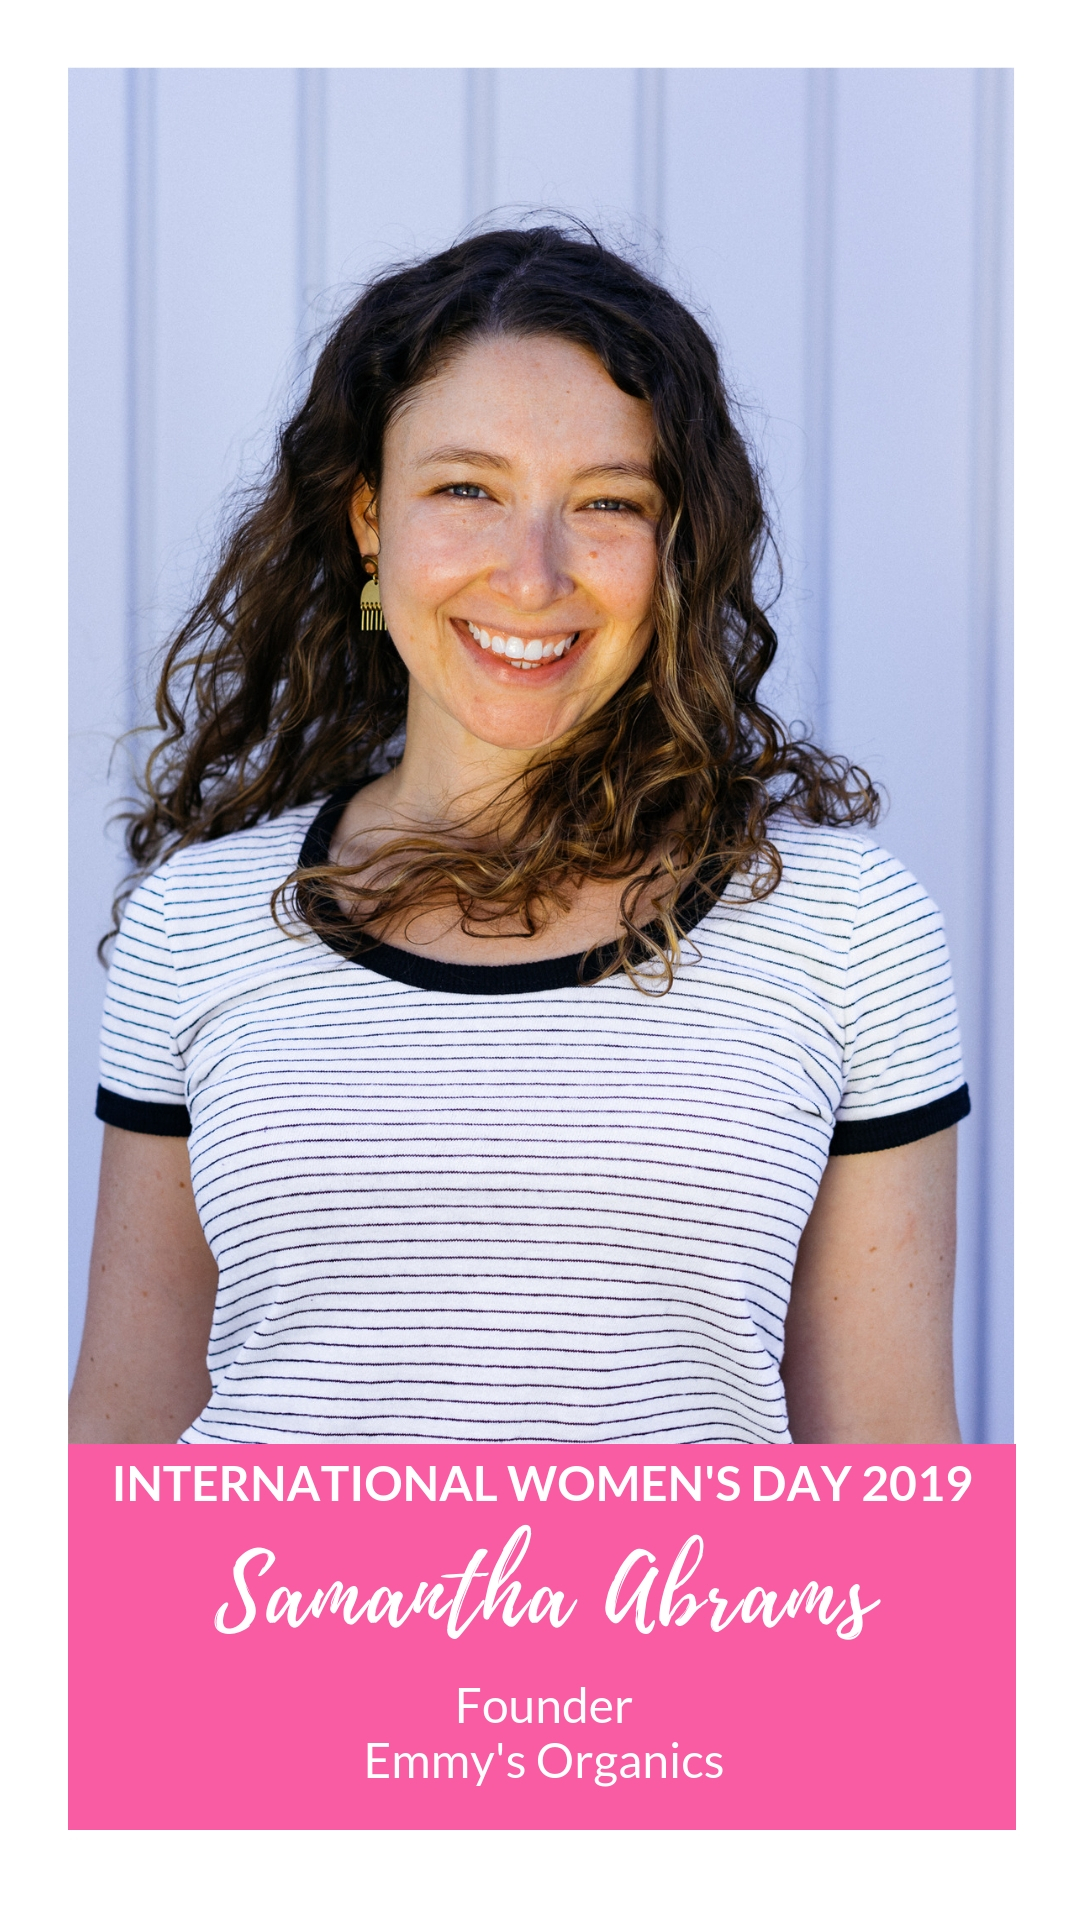 International Women's Day - Samantha Abrams